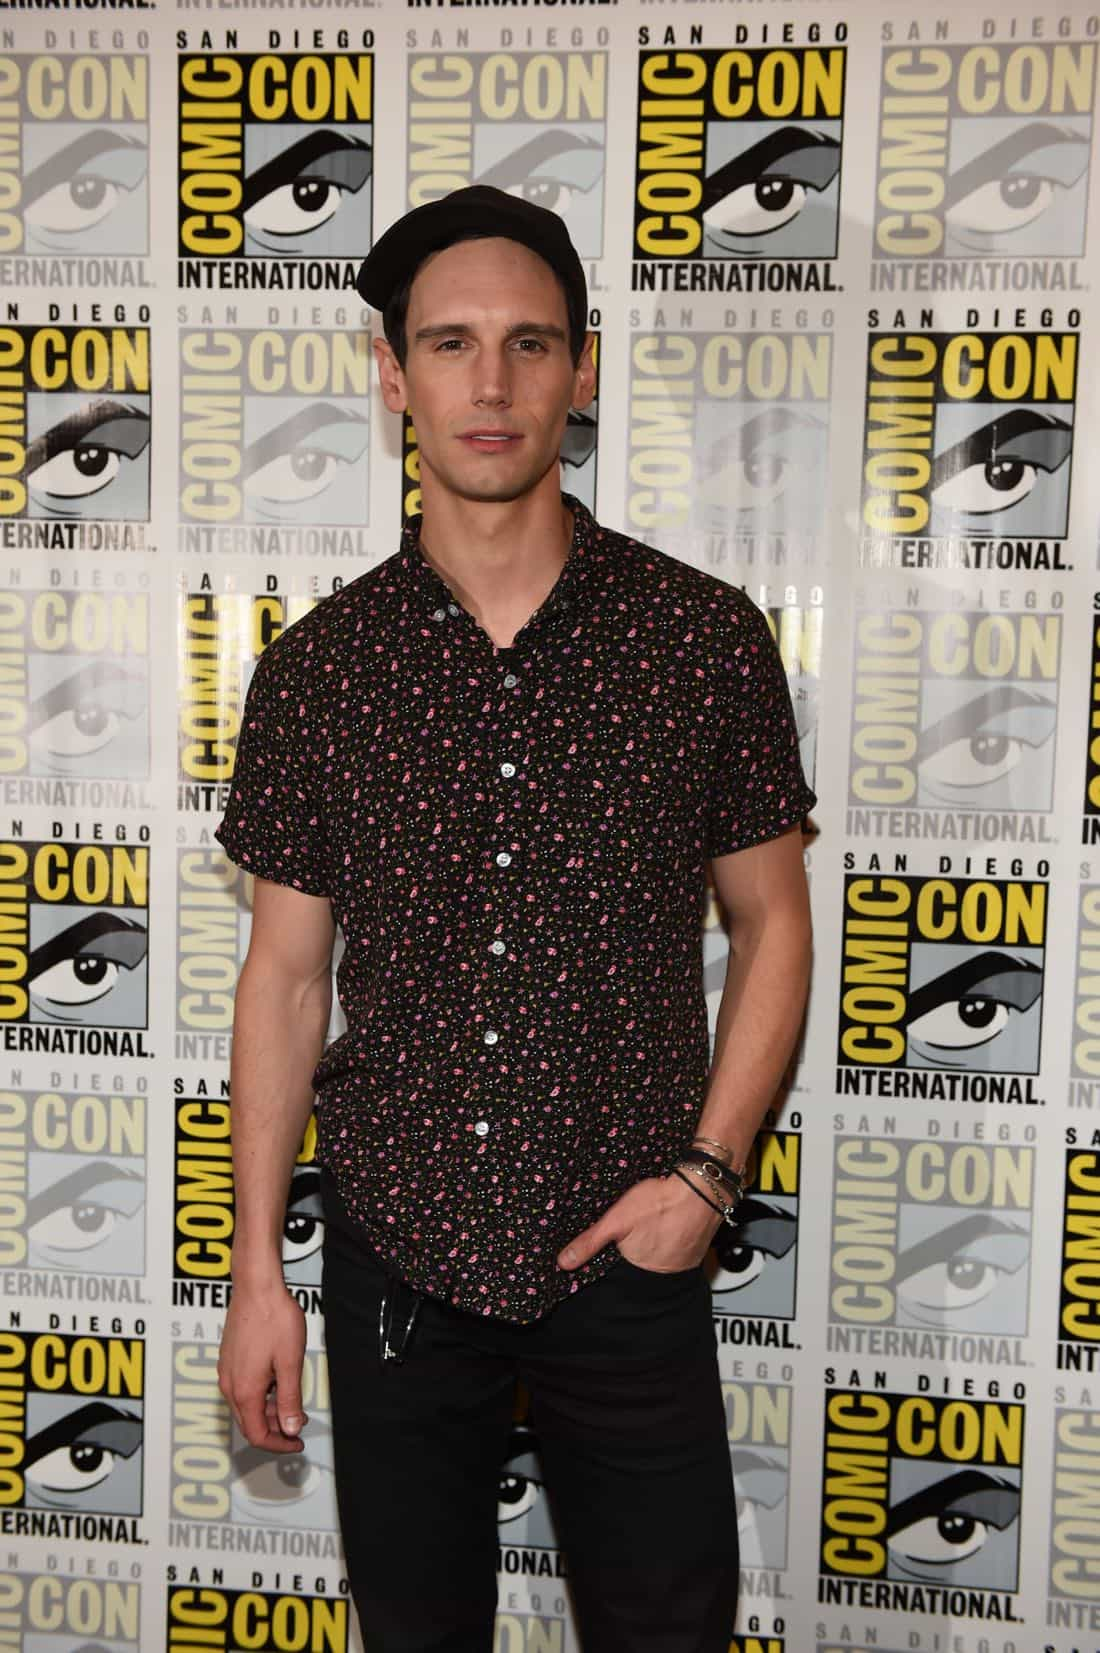 FOX FANFARE AT SAN DIEGO COMIC-CON © 2016: GOTHAM cast member Cory Michael Smith during GOTHAM press room on Saturday, July 23 at the FOX FANFARE AT SAN DIEGO COMIC-CON © 2016. CR: Scott Kirkland/FOX © 2016 FOX BROADCASTING